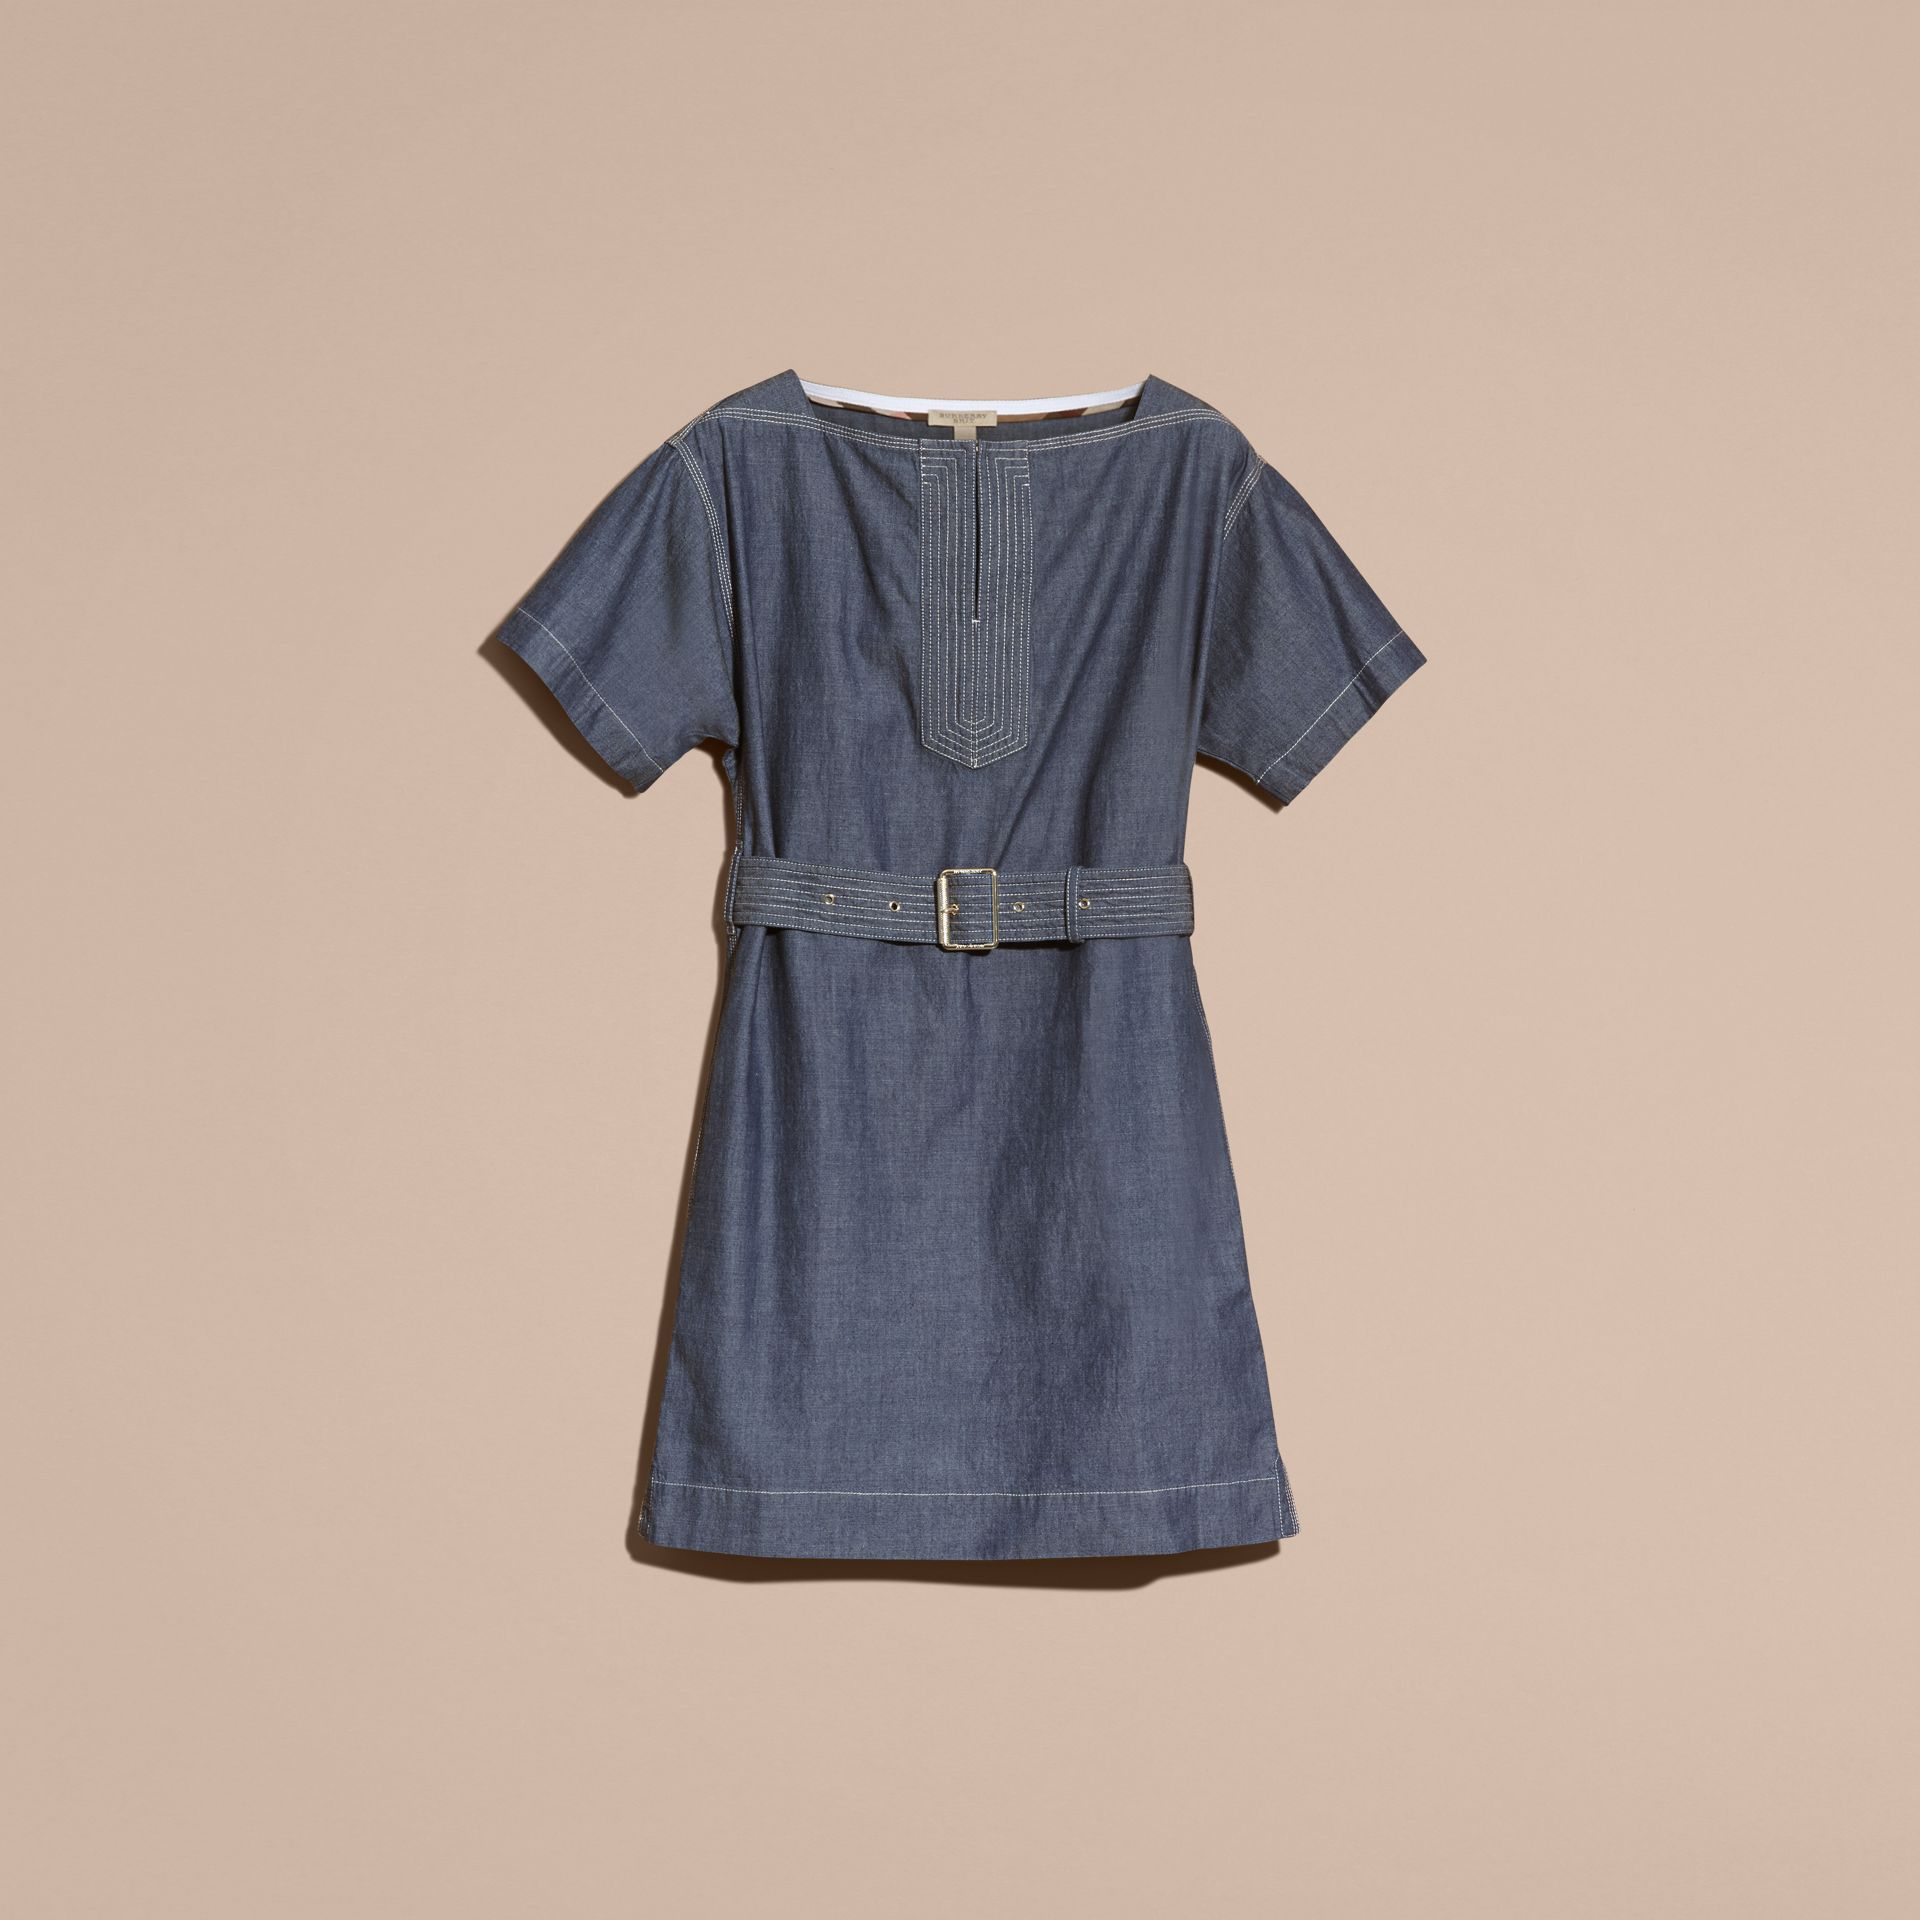 Light indigo blue Short-sleeved Chambray Cotton Dress with Belt - gallery image 4